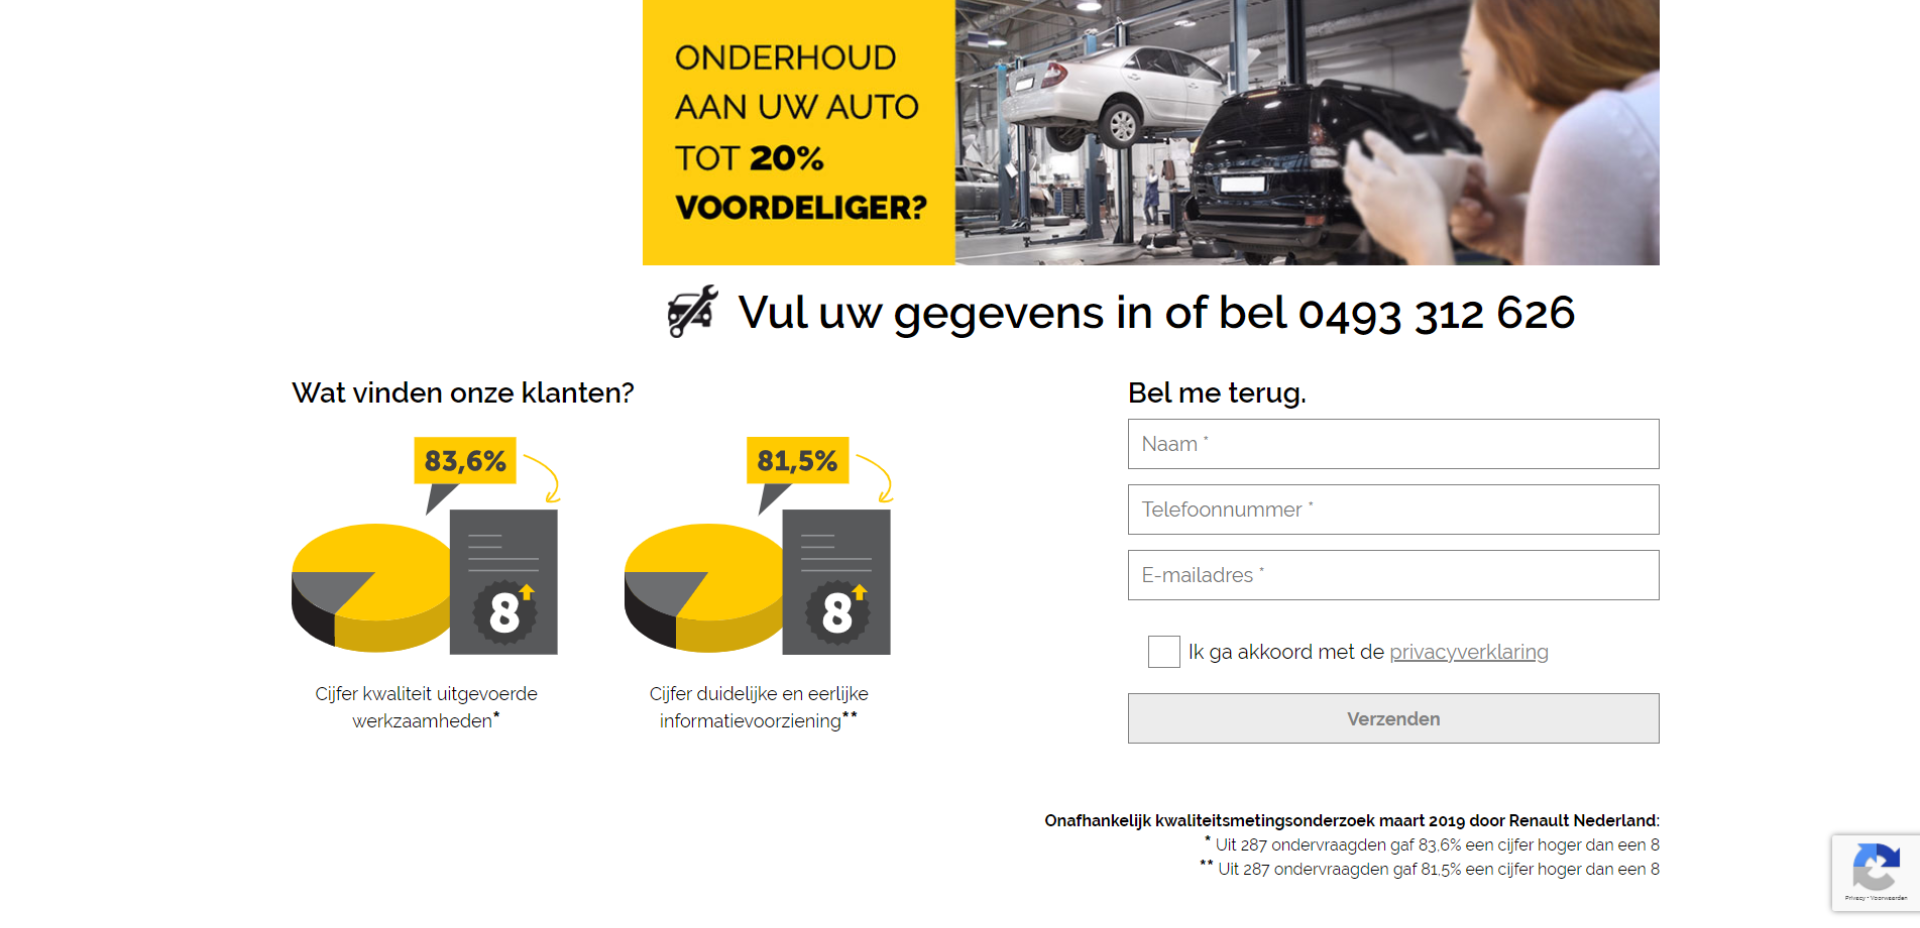 Renault-Manders-website-Spiegel-crossmedia-communicatie